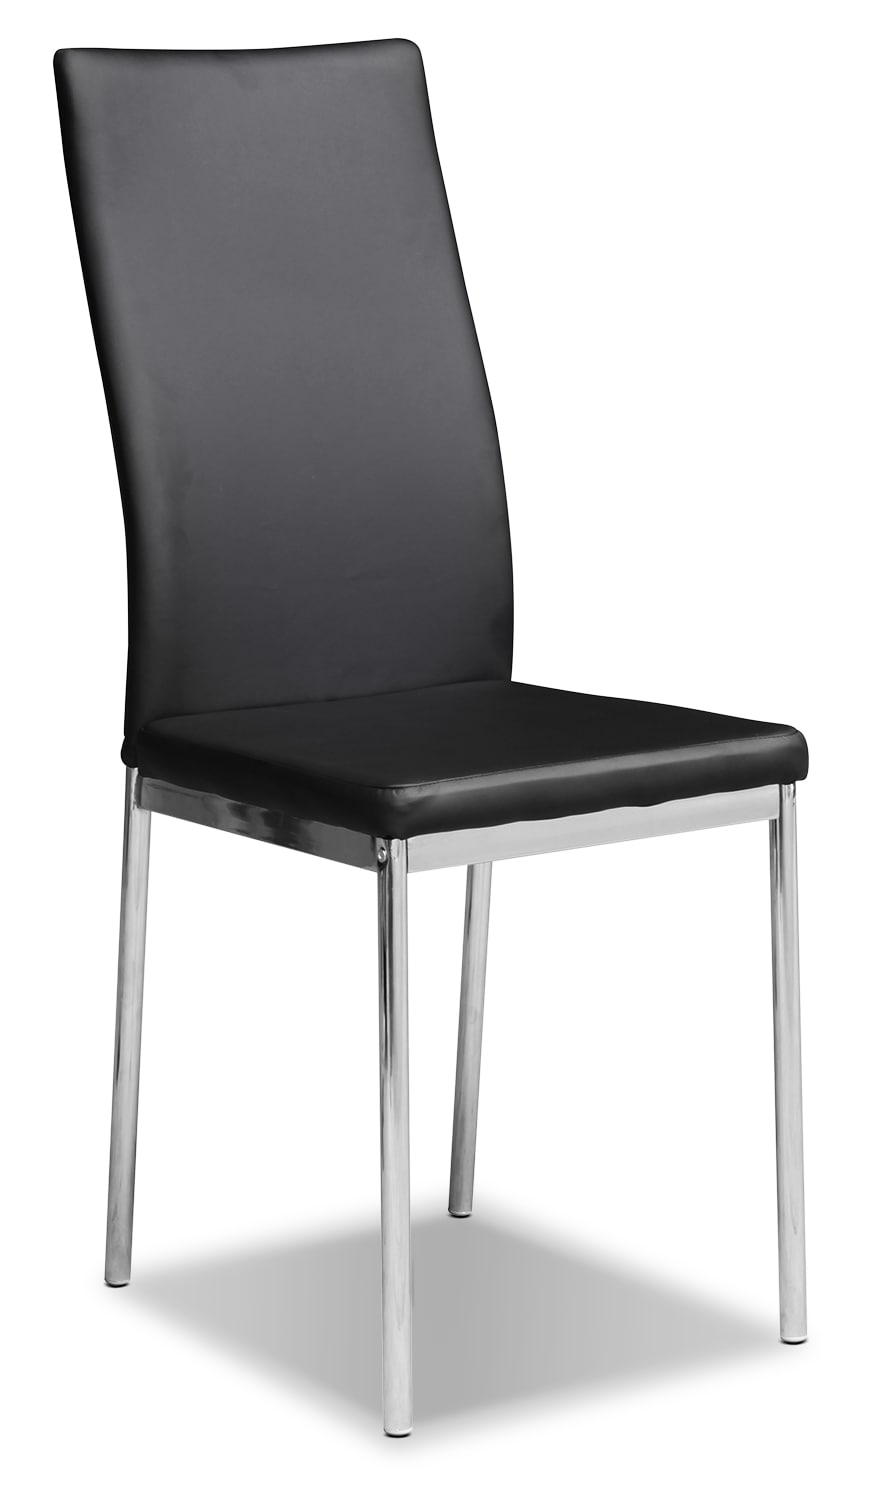 Dining Room Furniture - Koda Dining Chair - Black